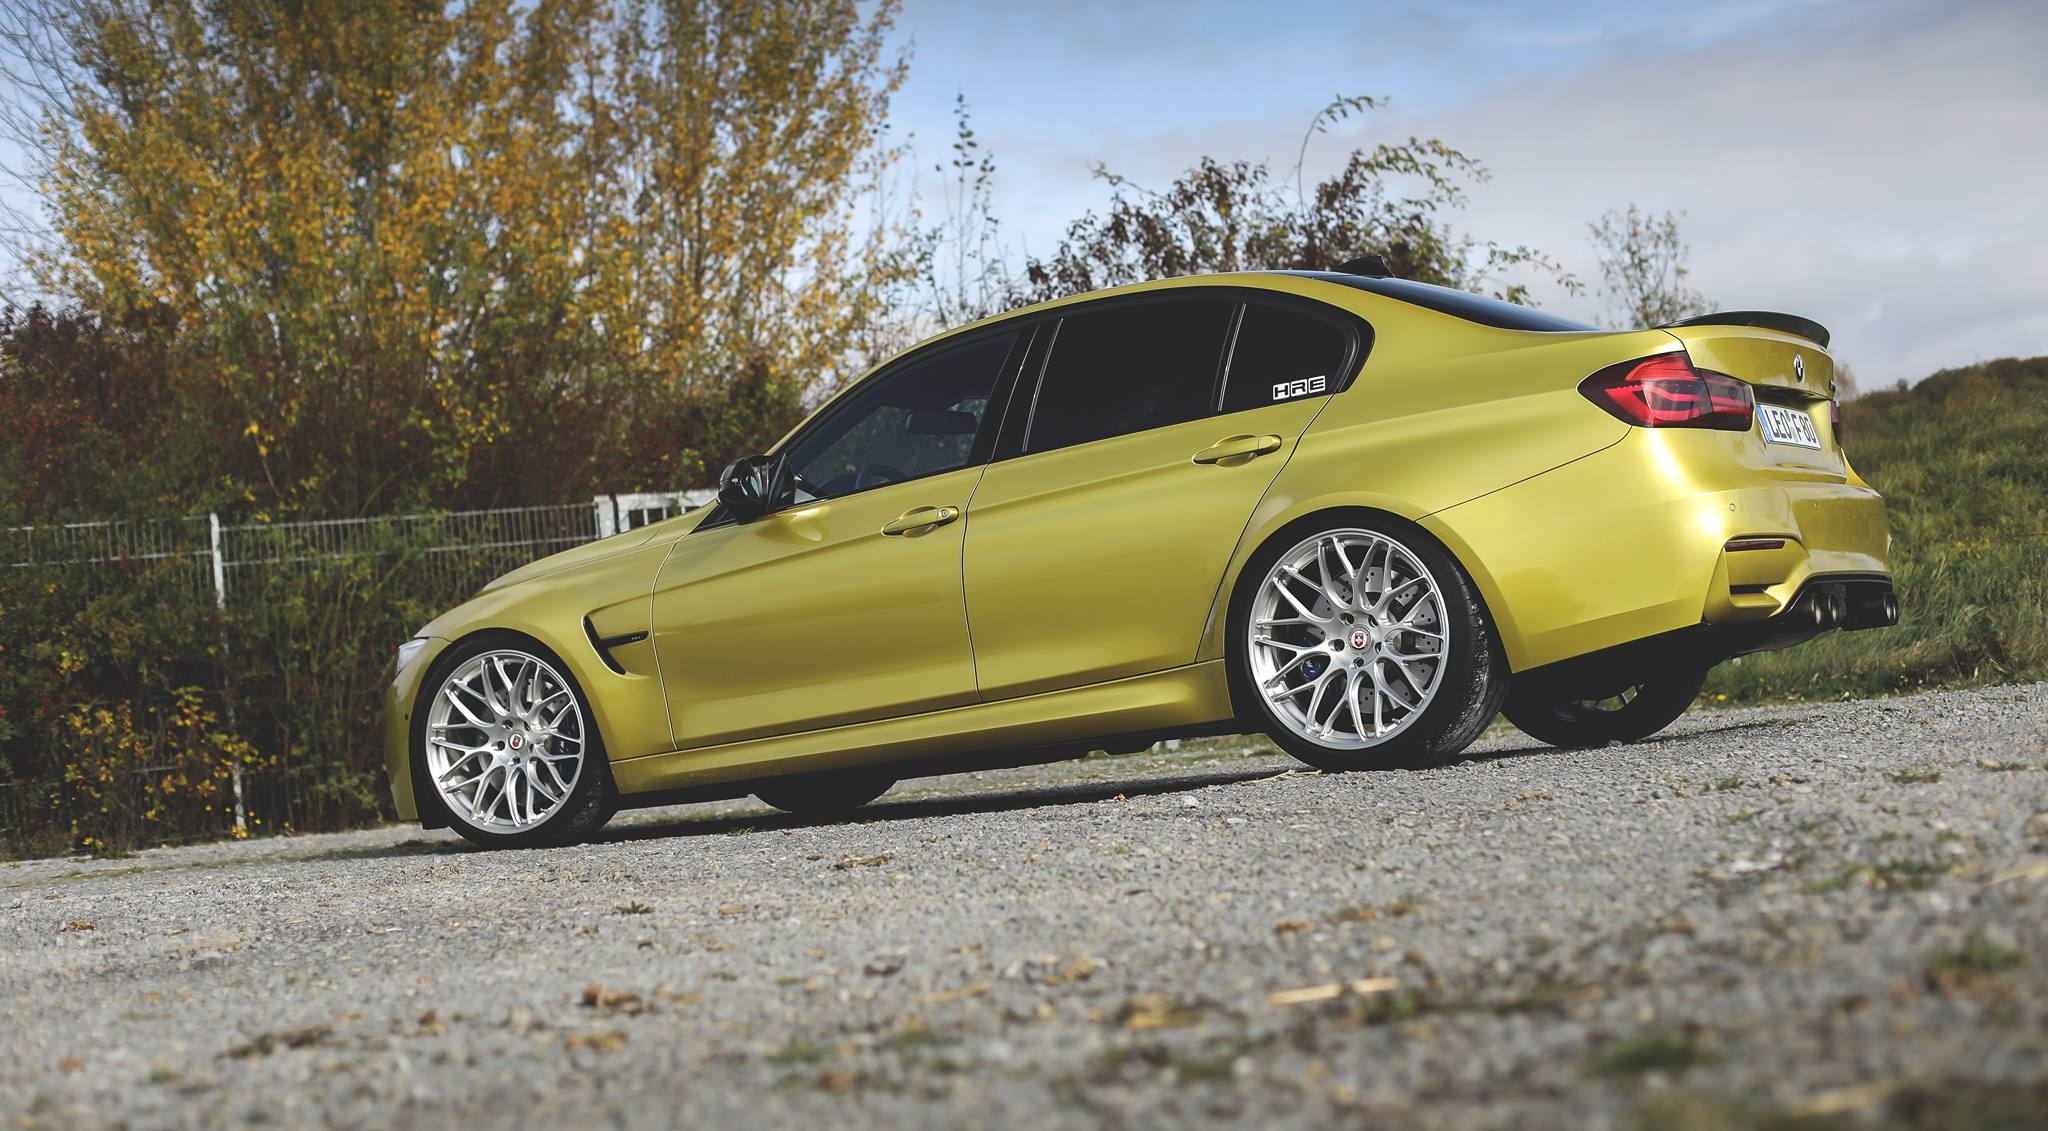 hot f80 bmw m3 in austin yellow and hre wheels pops up online bmw car tuning. Black Bedroom Furniture Sets. Home Design Ideas